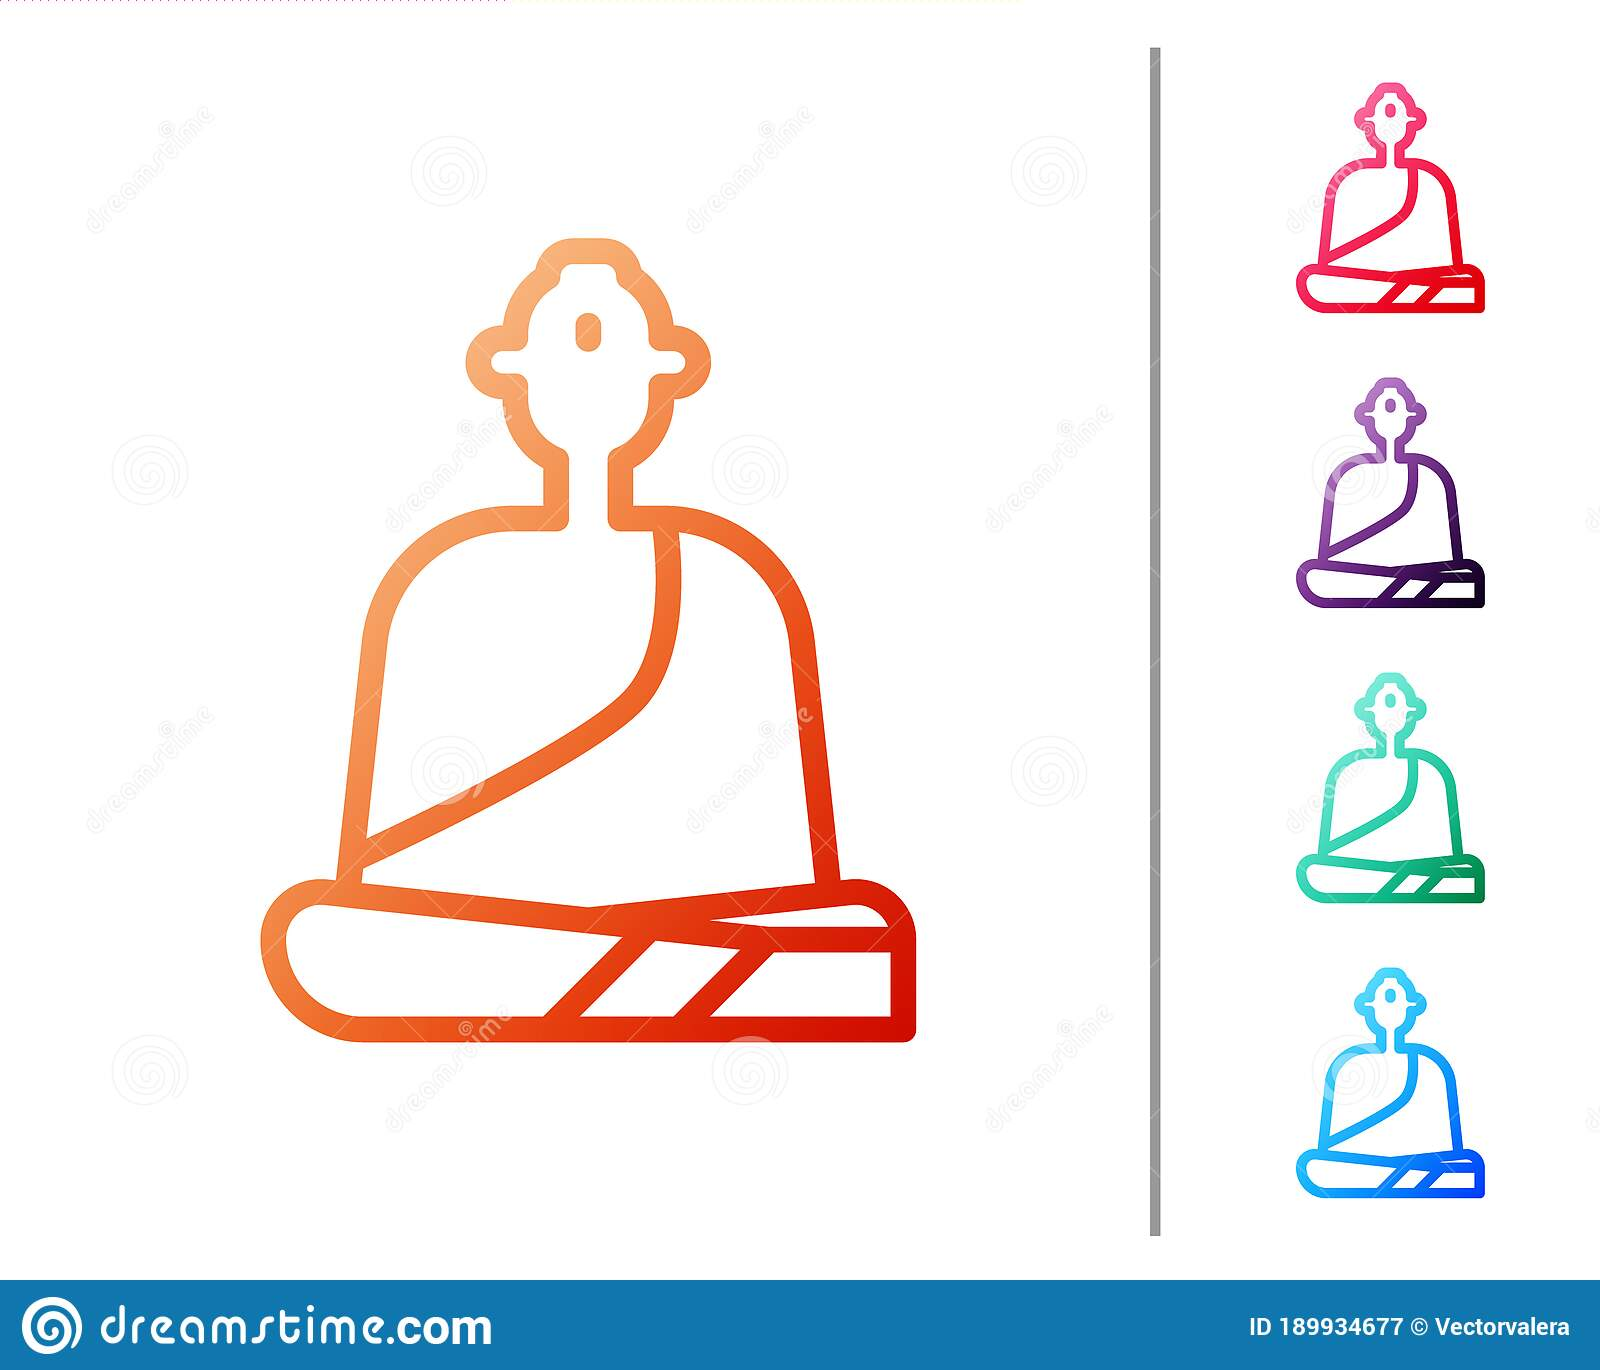 Red Line Buddhist Monk In Robes Sitting In Meditation Icon Isolated On White Background Set Color Icons Vector Stock Vector Illustration Of Monk Design 189934677